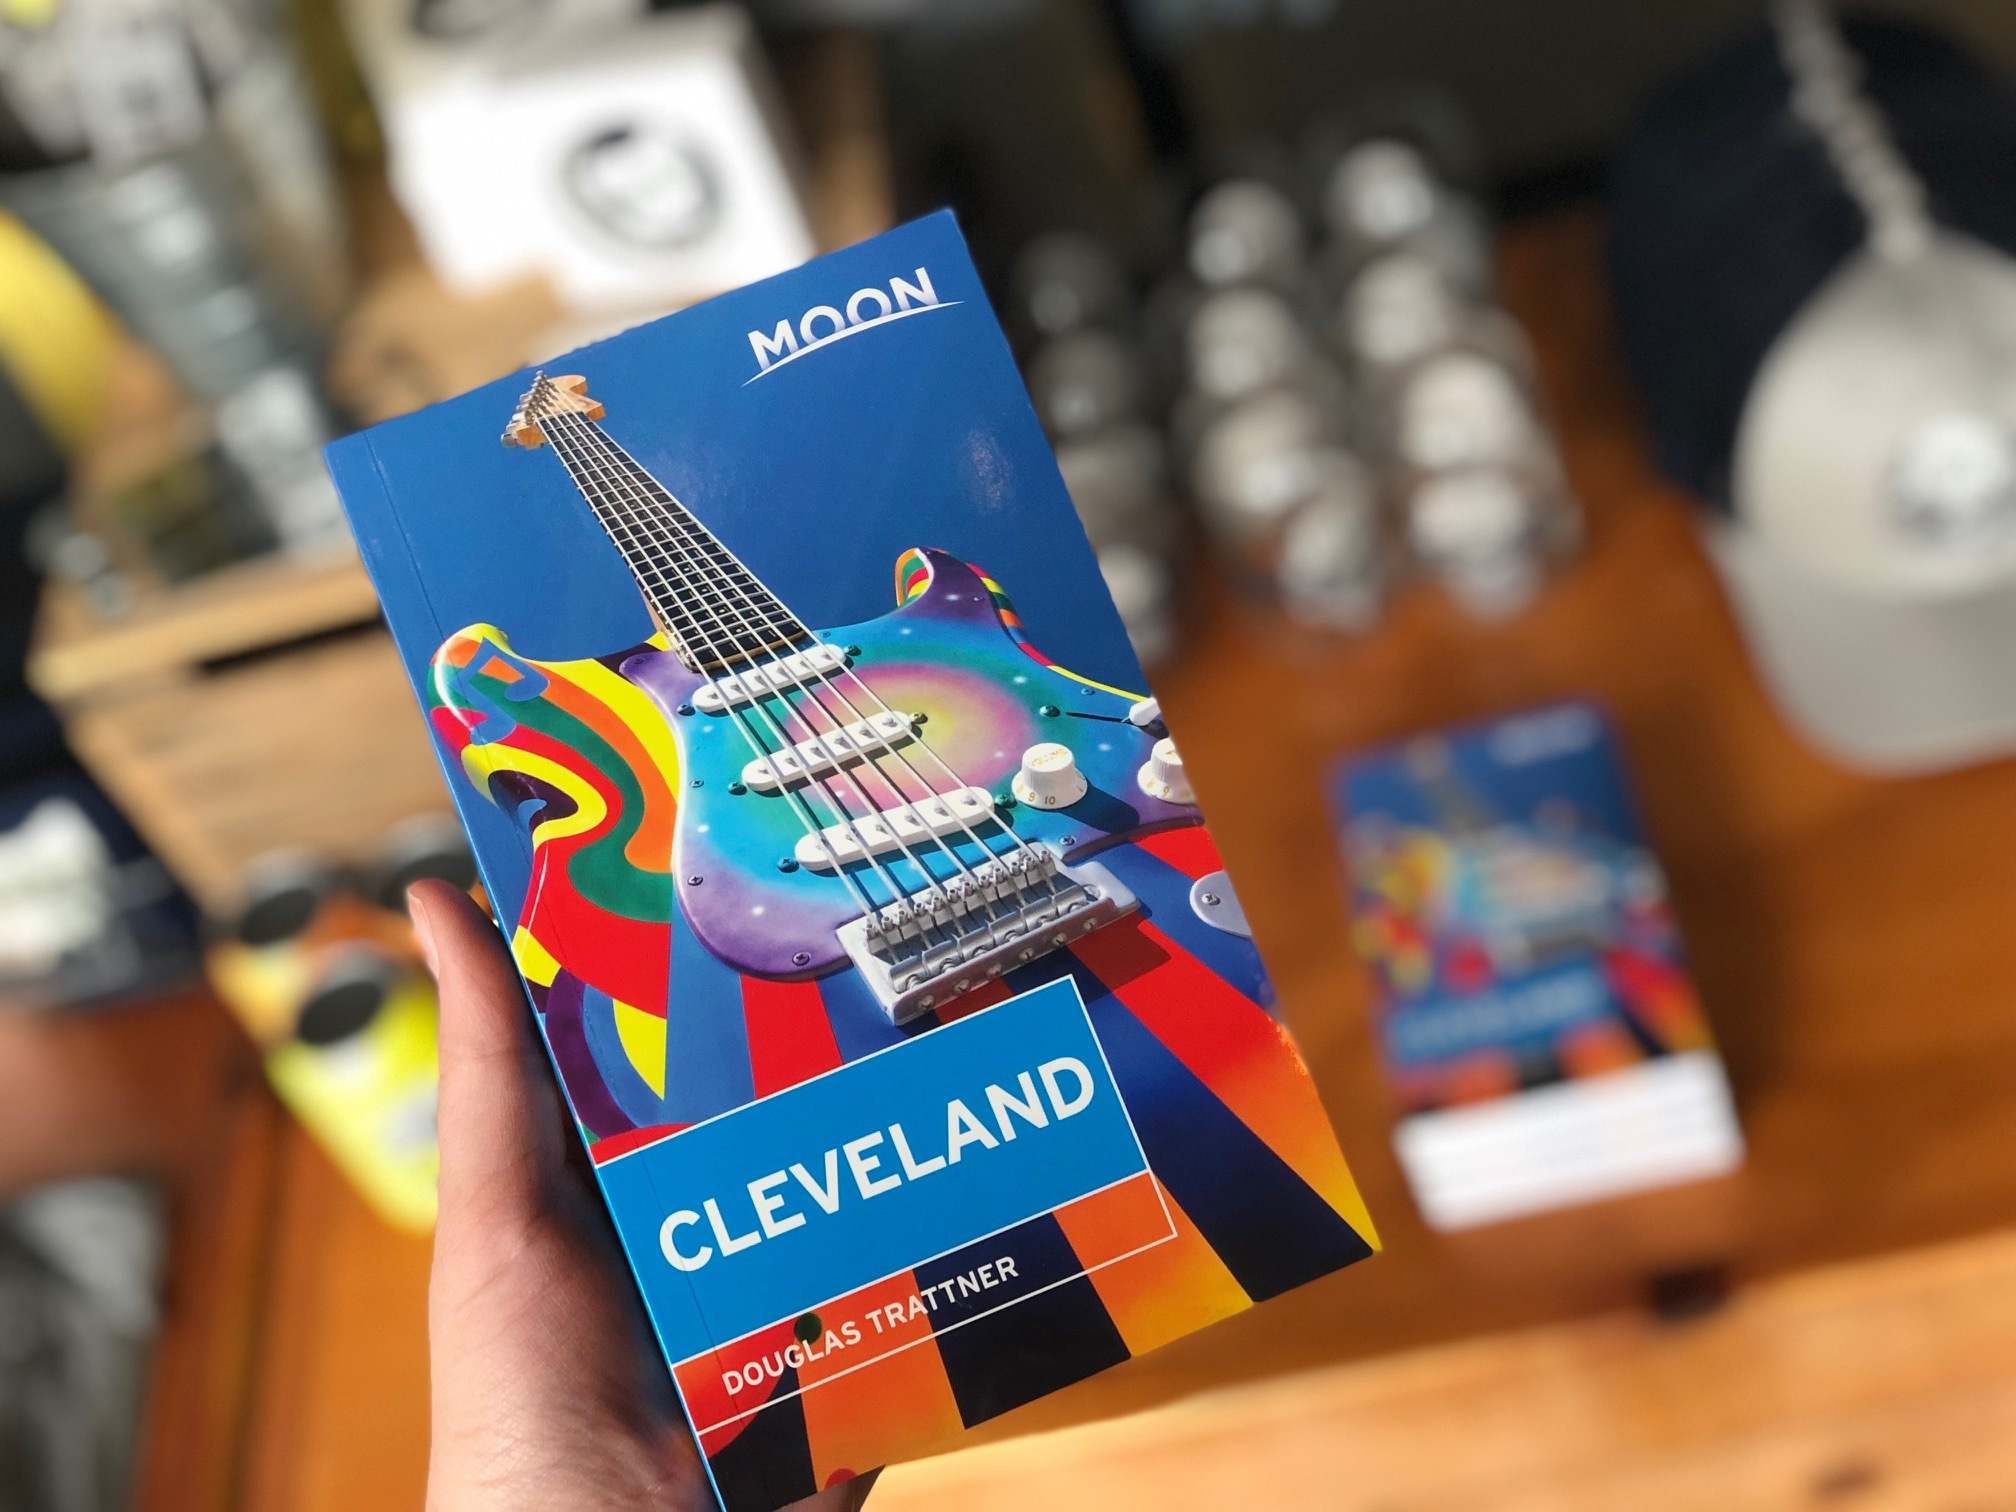 Cleveland book by Douglas Trattner